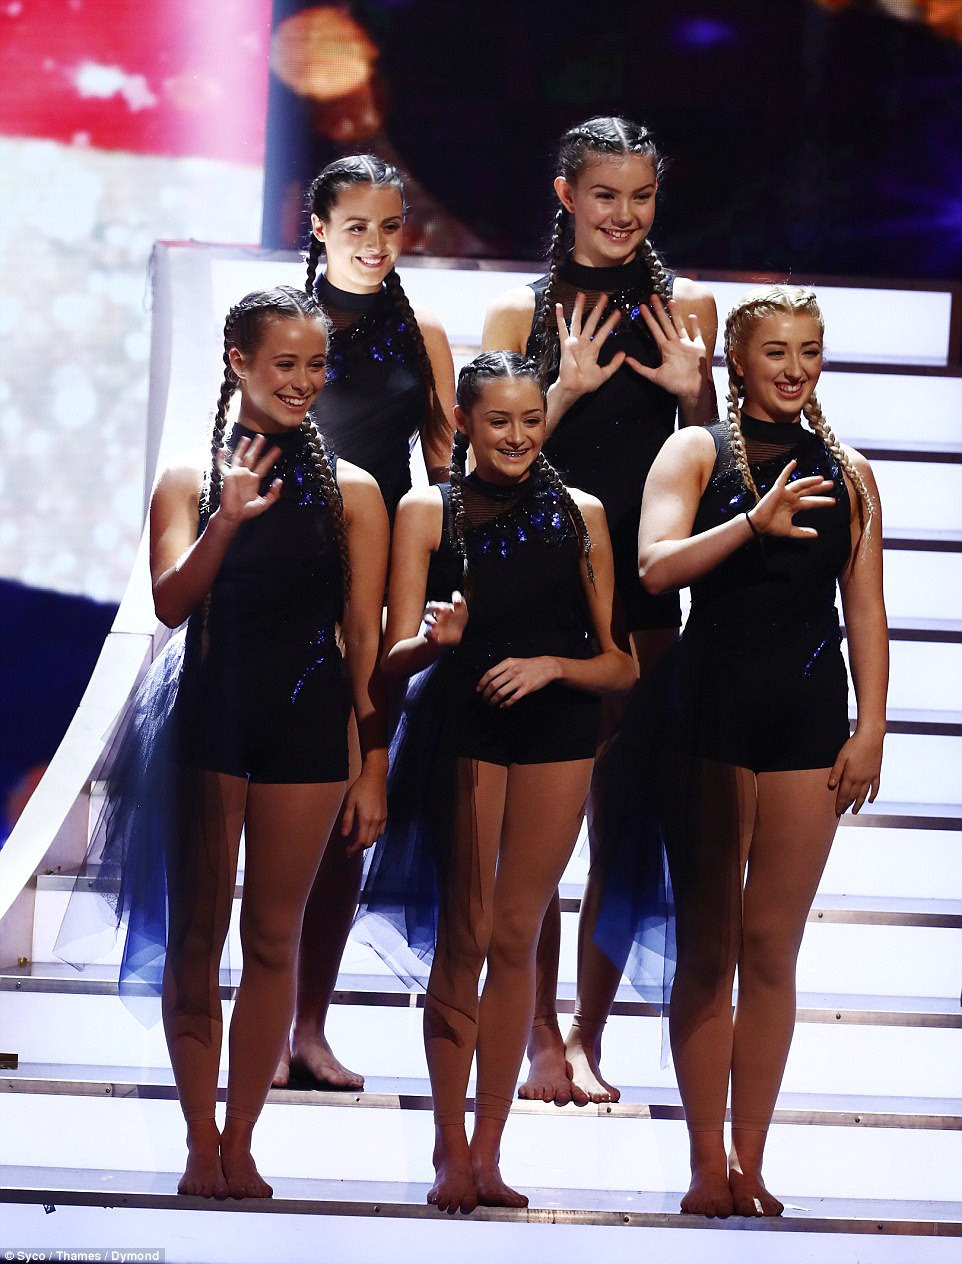 Dancing sensation:Elsewhere in the action-packed final Simon Cowell was left heartbroken by 15-year-old Julia Carlile's tale as the MerseyGirls danced up a storm